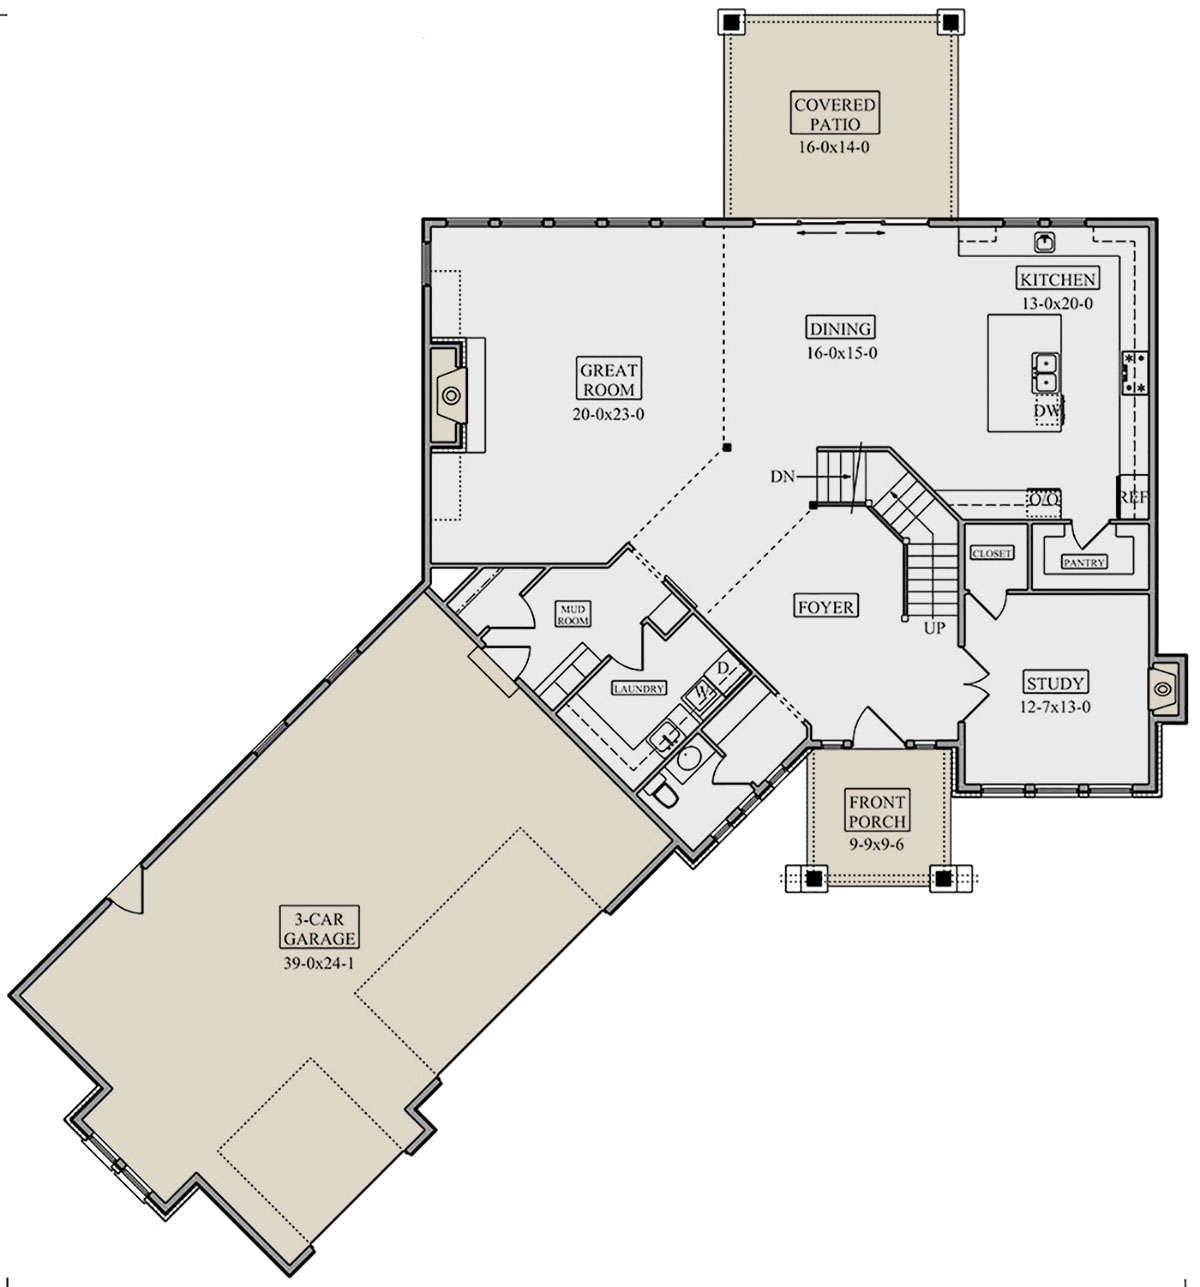 House Plan 5631 00086 Northwest Plan 3 305 Square Feet 3 5 Bedrooms 2 5 Bathrooms In 2021 House Plans How To Plan Florida House Plans